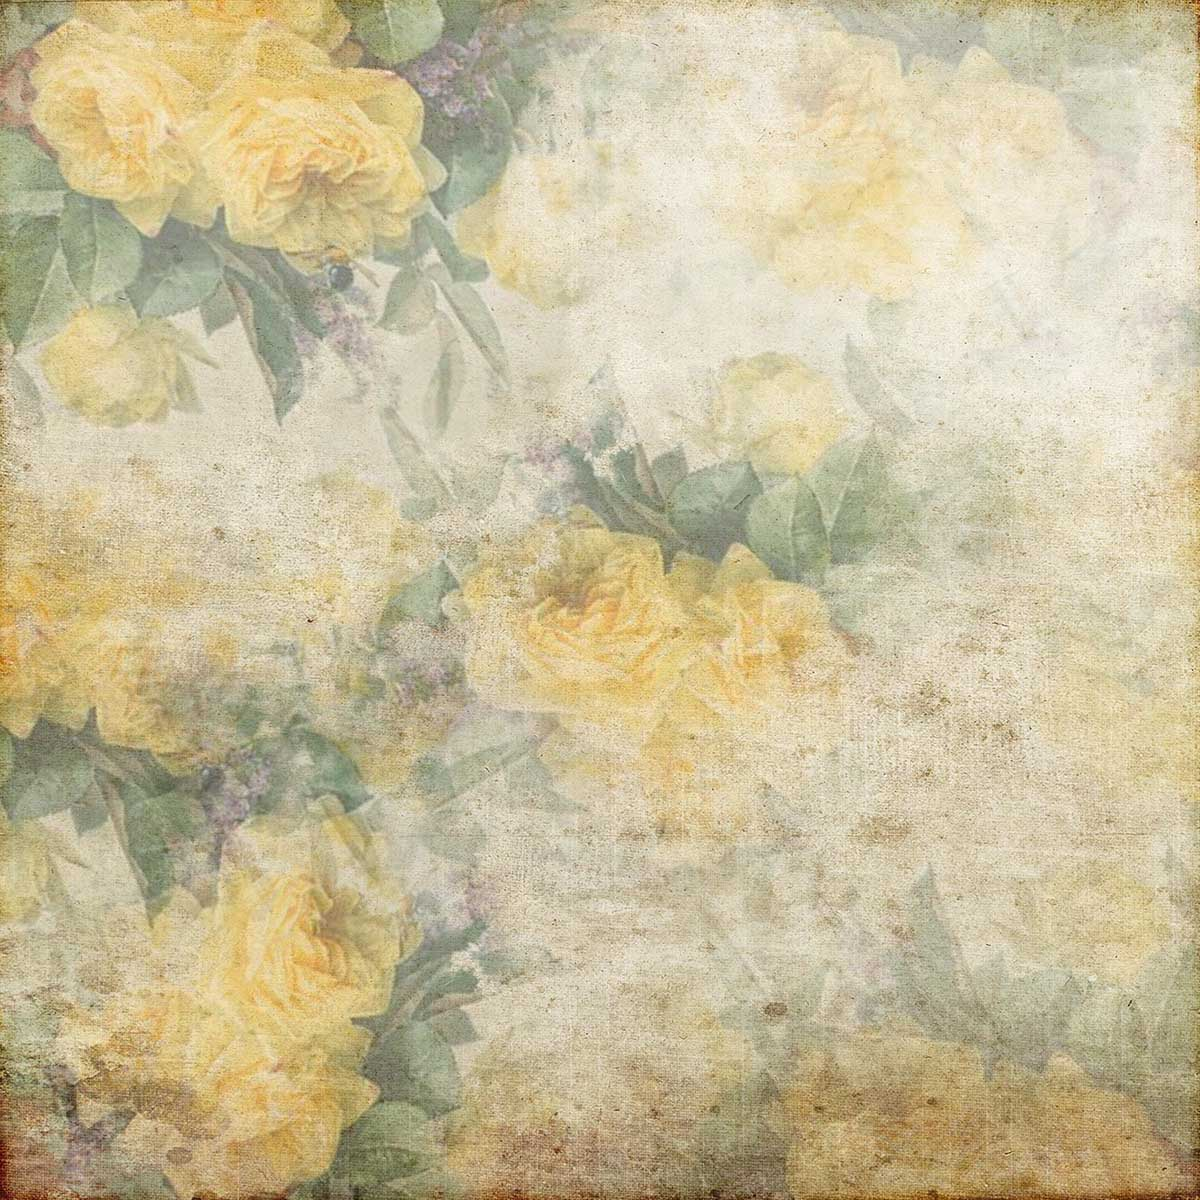 Yellow Rose Flower Vintage Backdrop for Wedding